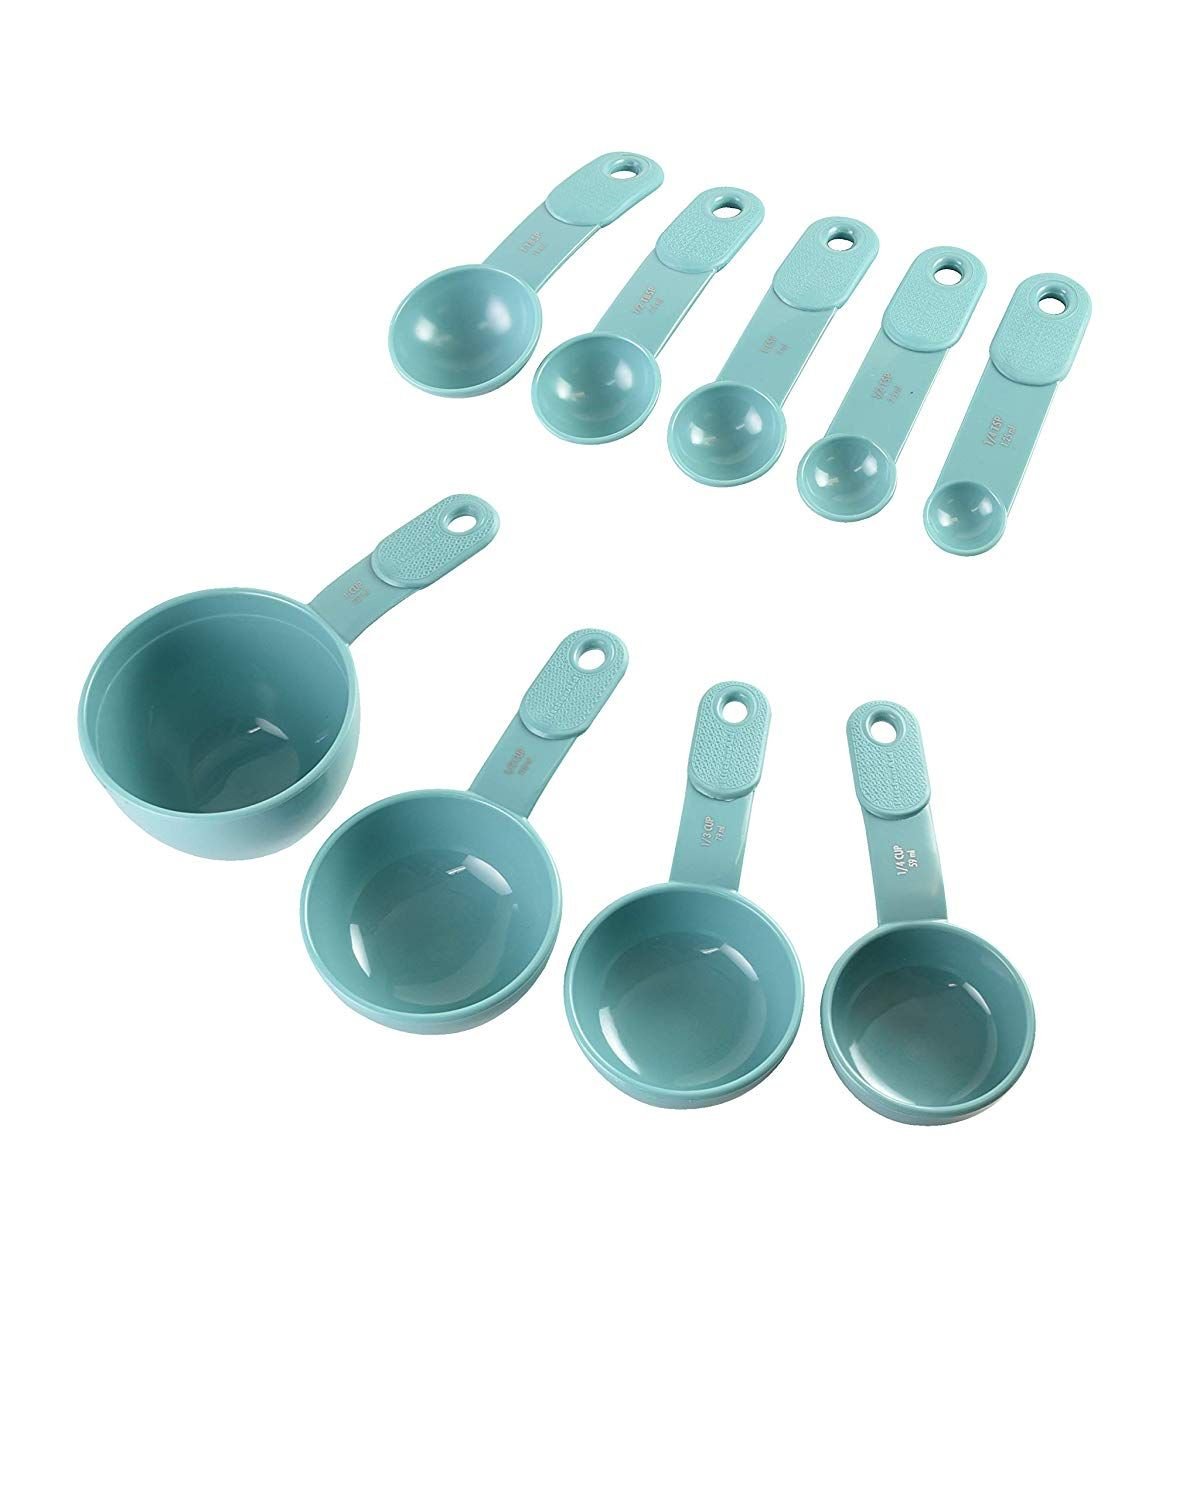 Kitchenaid 9piece measuring cup and spoon set